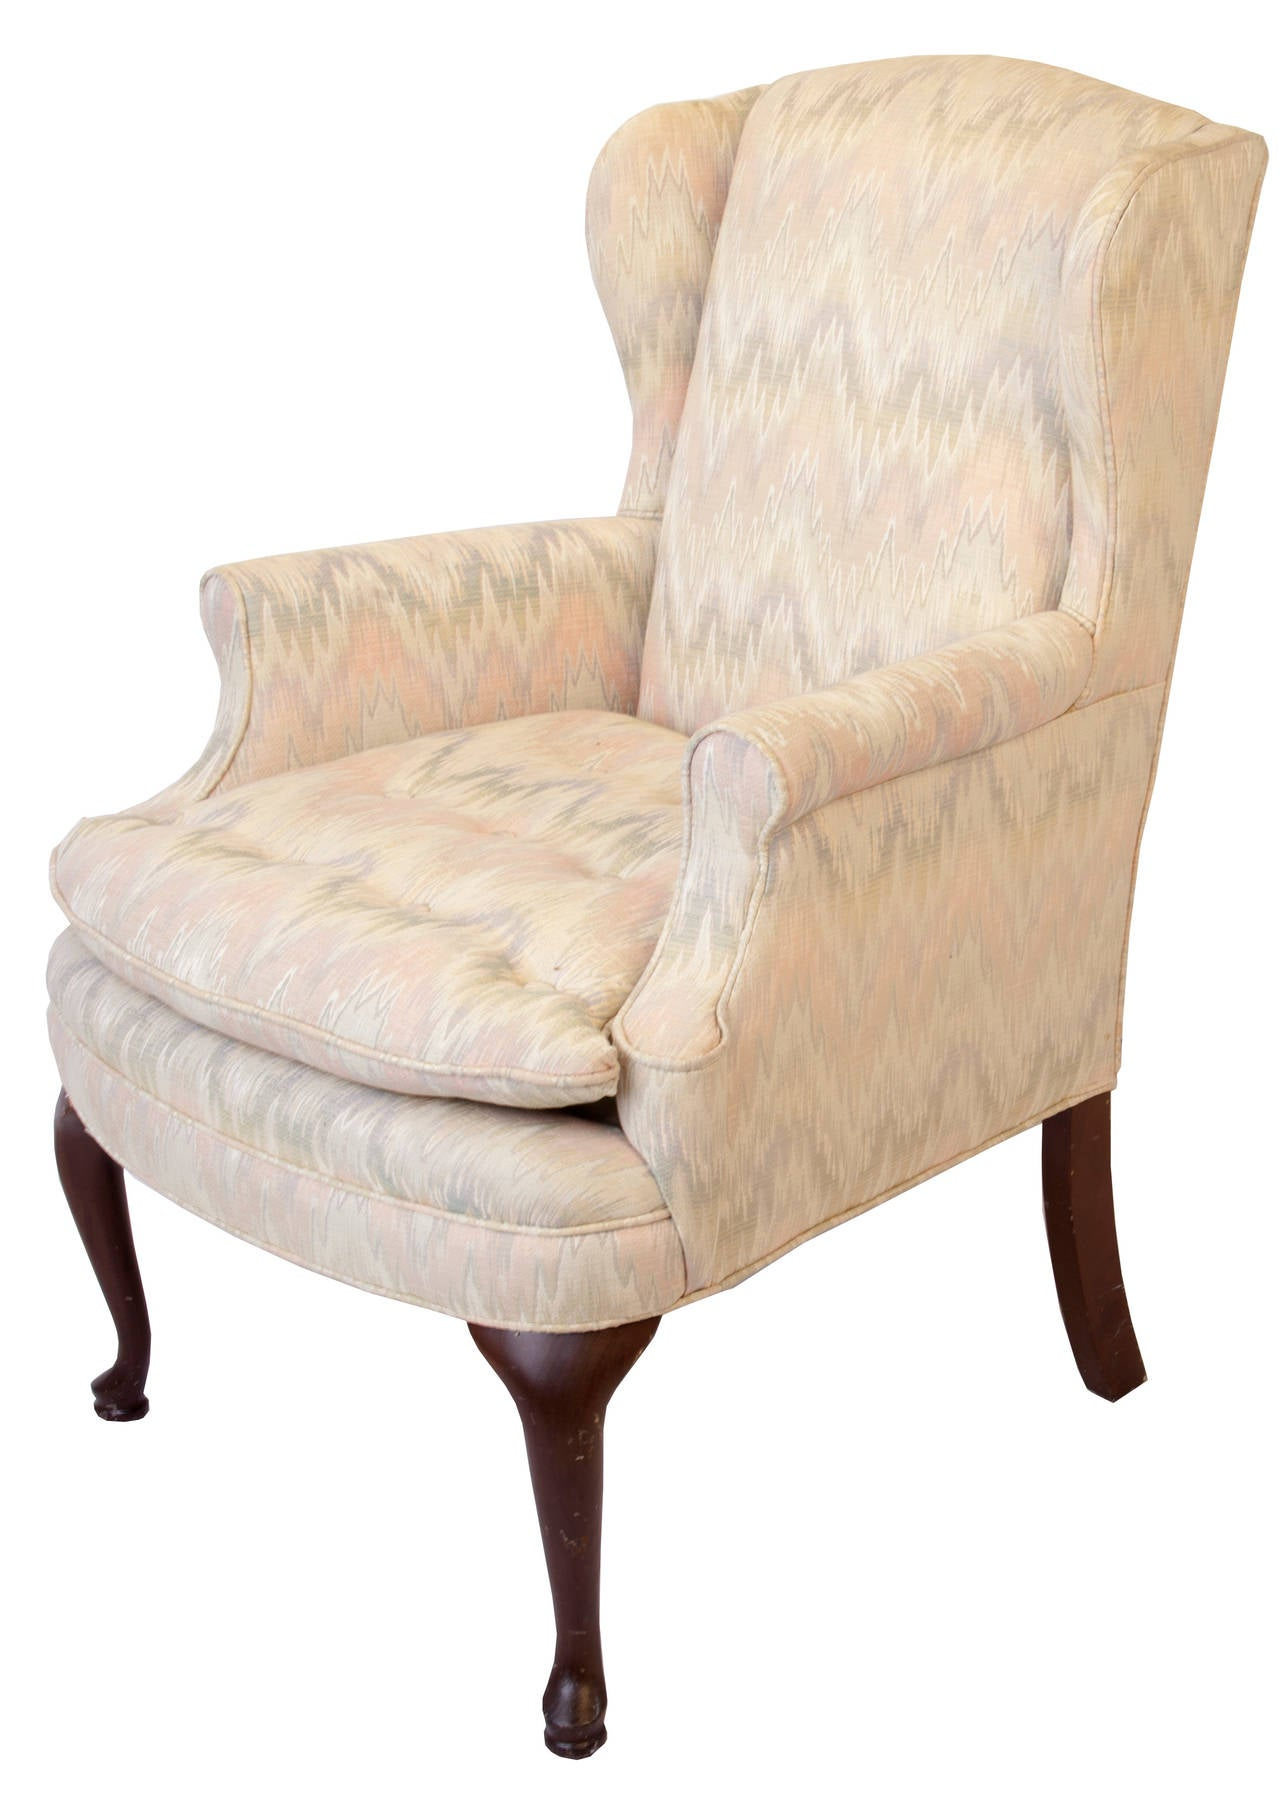 Queen Anne Style Upholstered Wing Chair In Good Condition For Sale In Asheville, NC